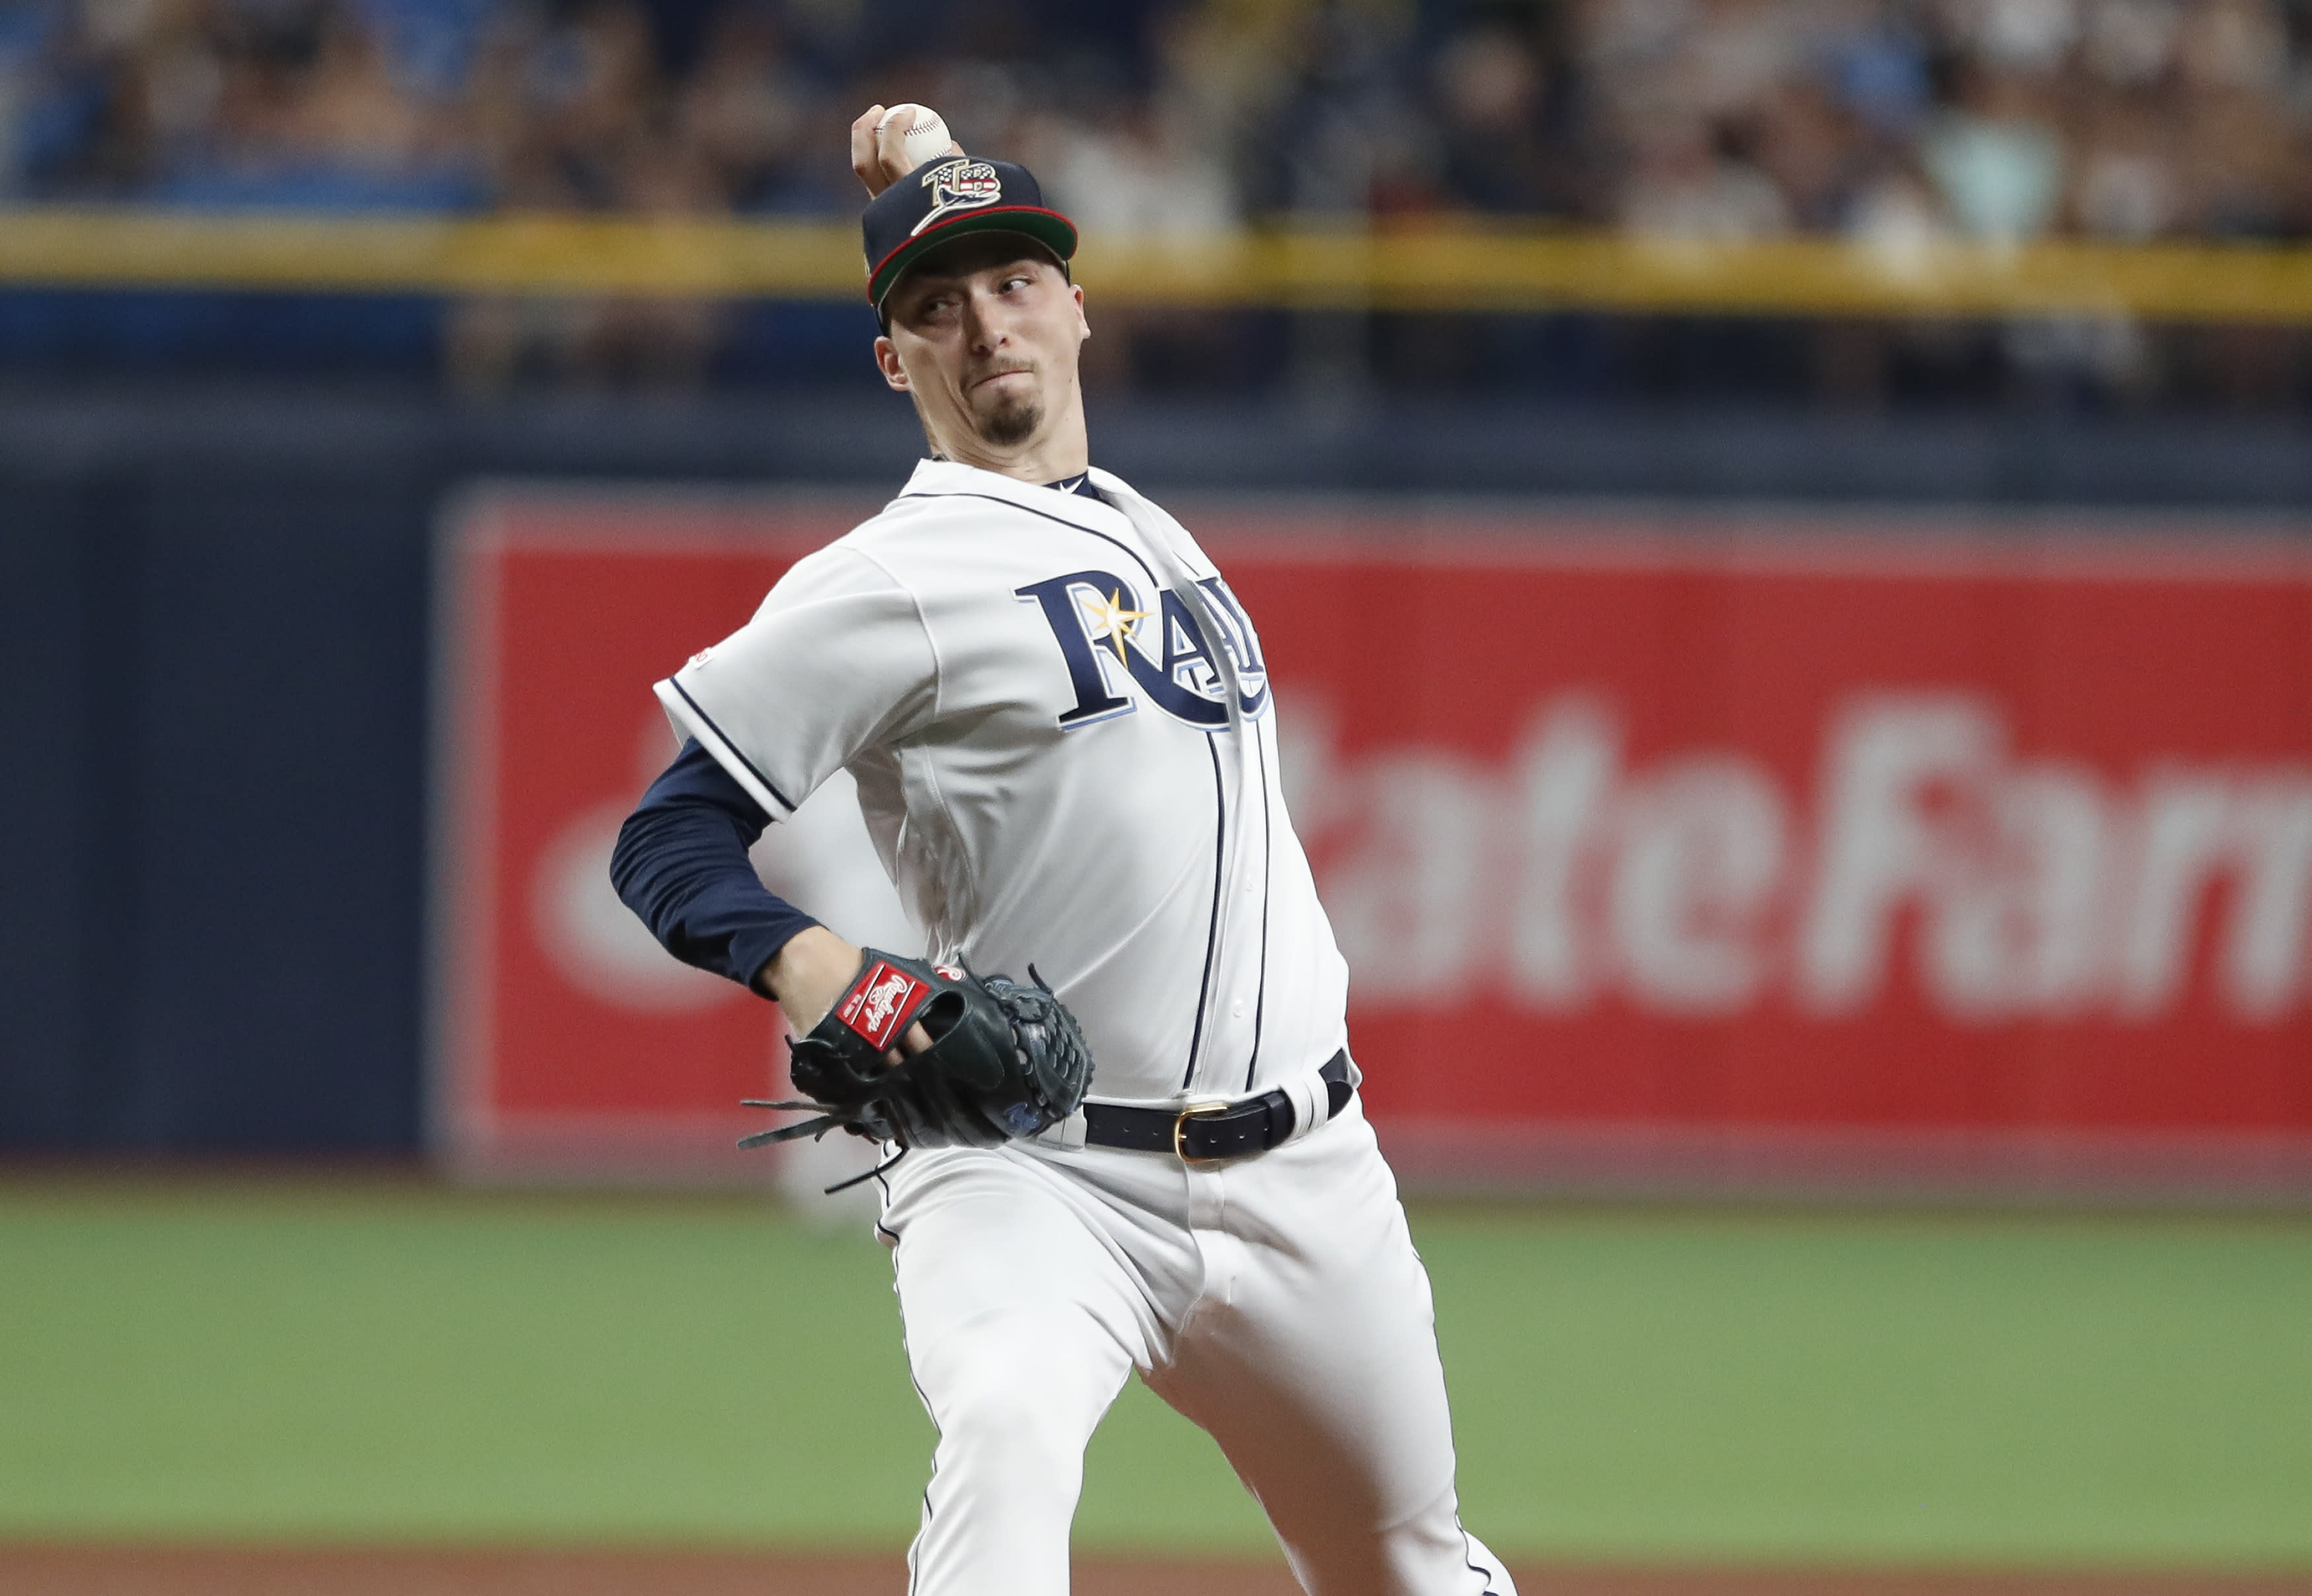 CORRECTS TO SATURDAY NOT THURSDAY - Tampa Bay Rays pitcher Blake Snell works from the mound against the New York Yankees during the first inning of a baseball game Saturday, July 6, 2019, in St. Petersburg, Fla. (AP Photo/Scott Audette)